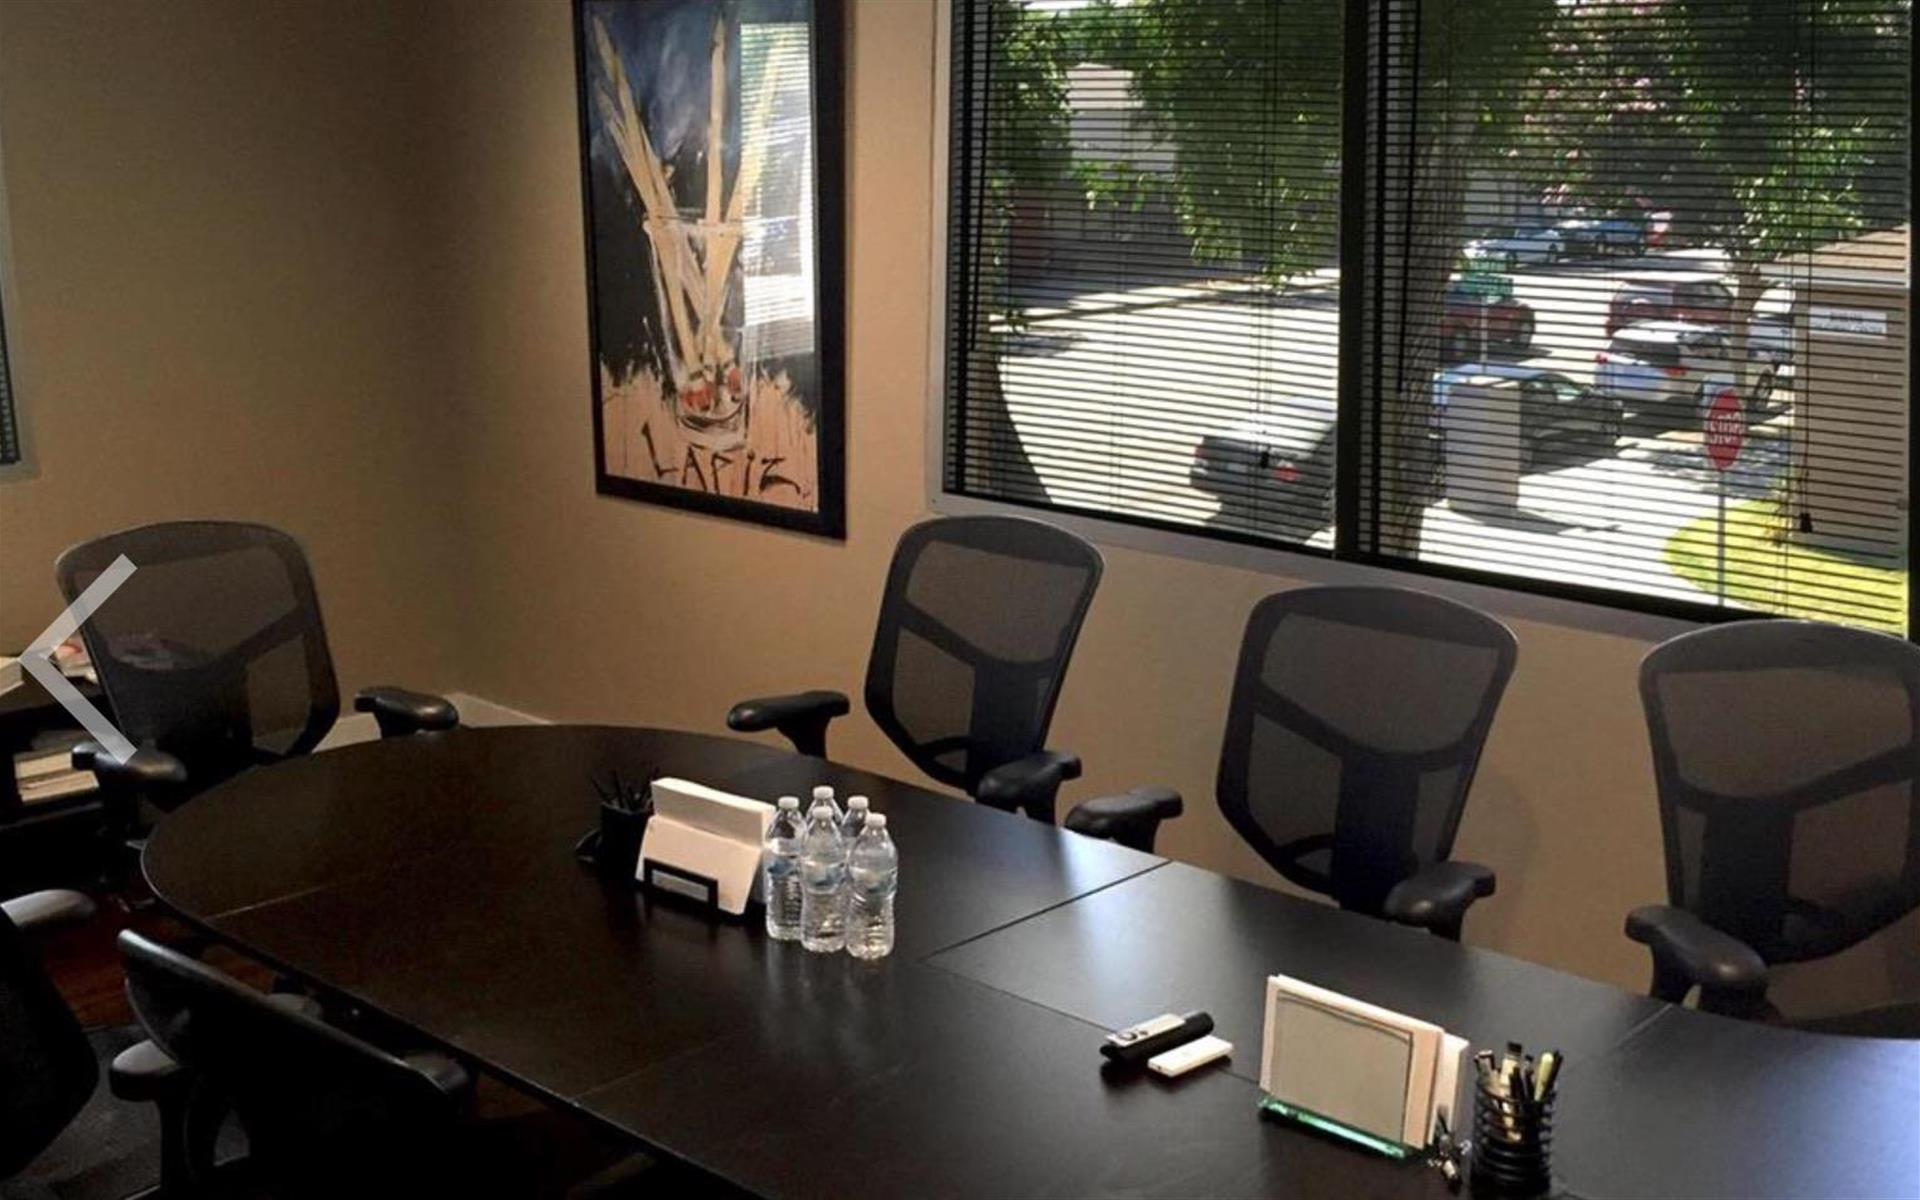 Eiffel Media - Monthly rental for conference room for 7